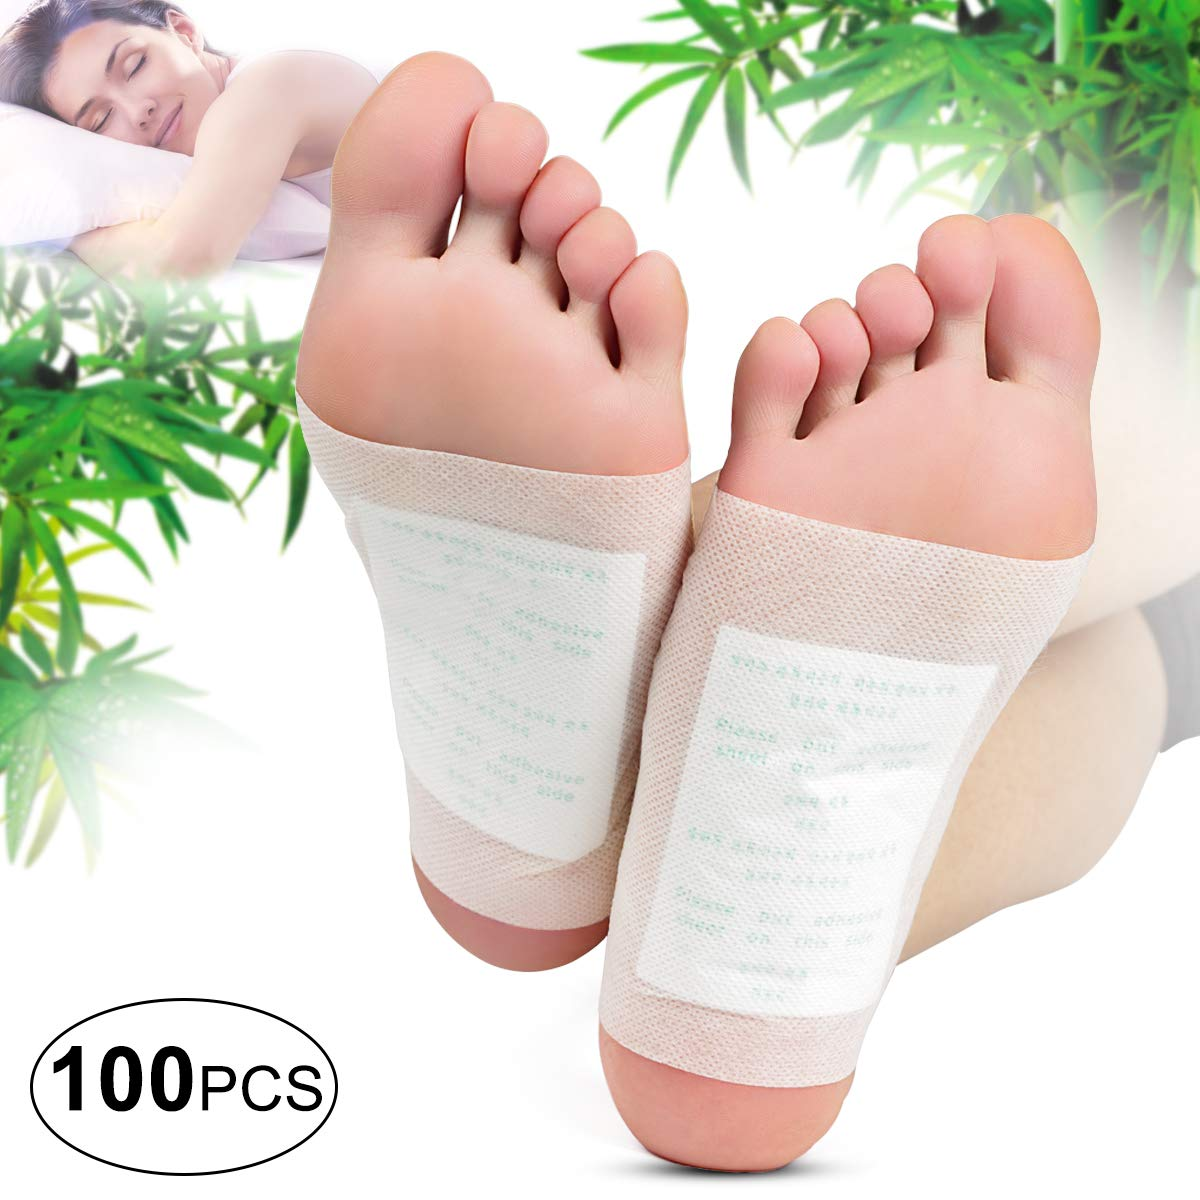 Foot Pads - (100pcs) Natural Cleansing Foot Pads for Foot Care, Sleeping & Anti-Stress Relief, No Stress Package - 100 Packs by BON'TIME